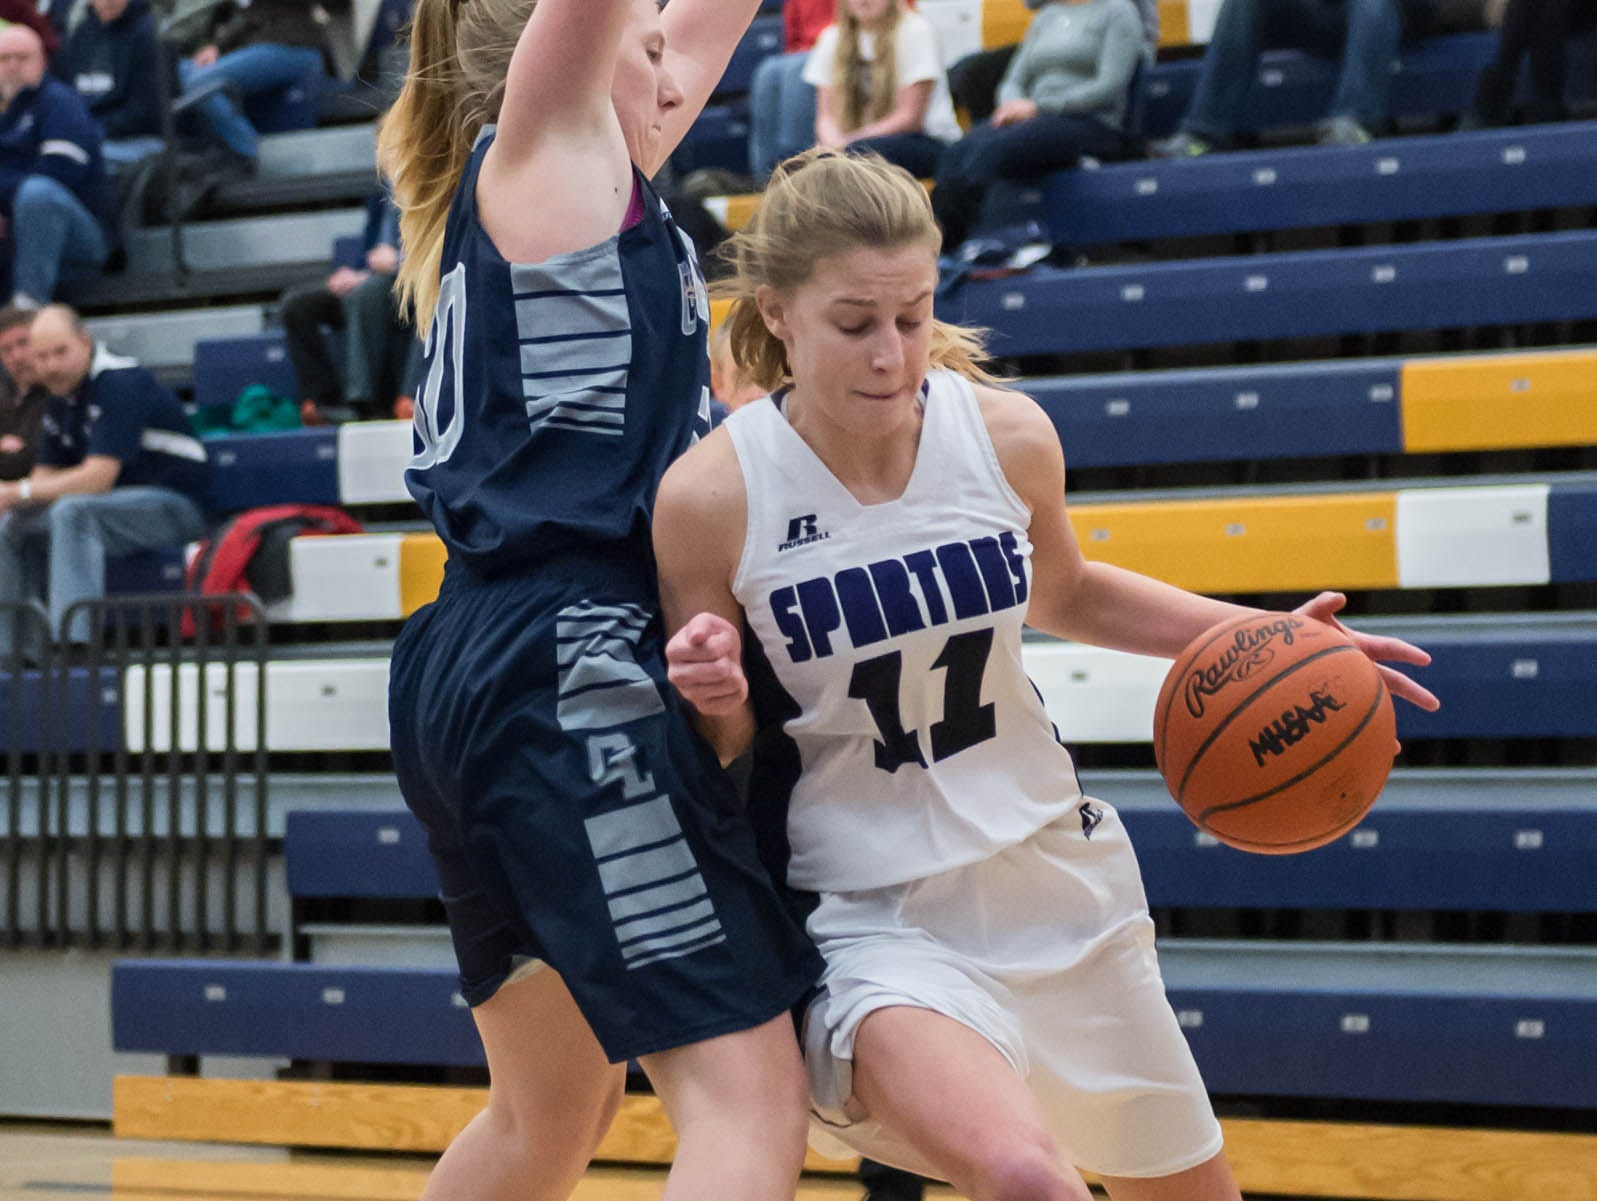 Lakeview's Ava Cook (11) drives to the basket while being guarded by Gull Lake defender Wednesday evening.